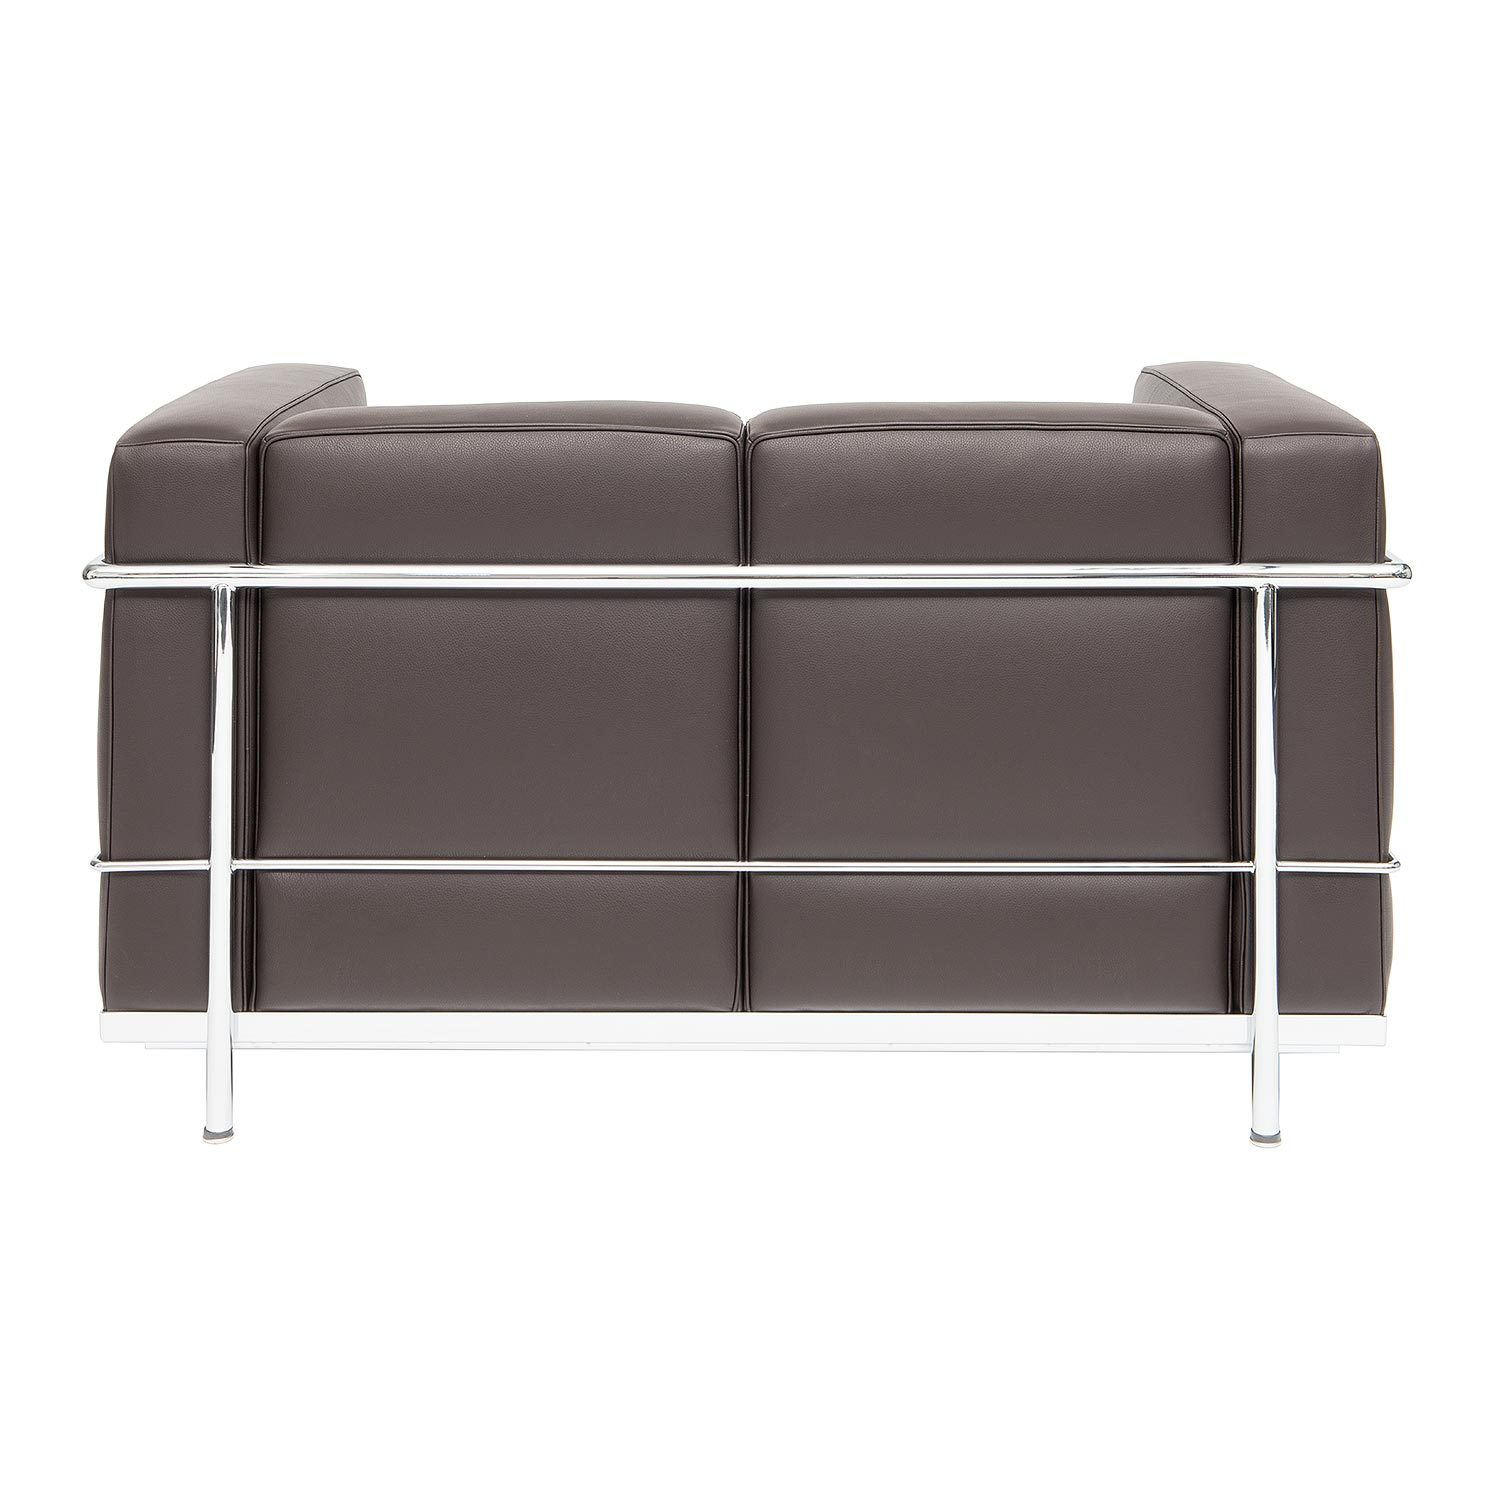 noguchi sofa reproduction beds shops slough corbusier lc22 rear steelform the best